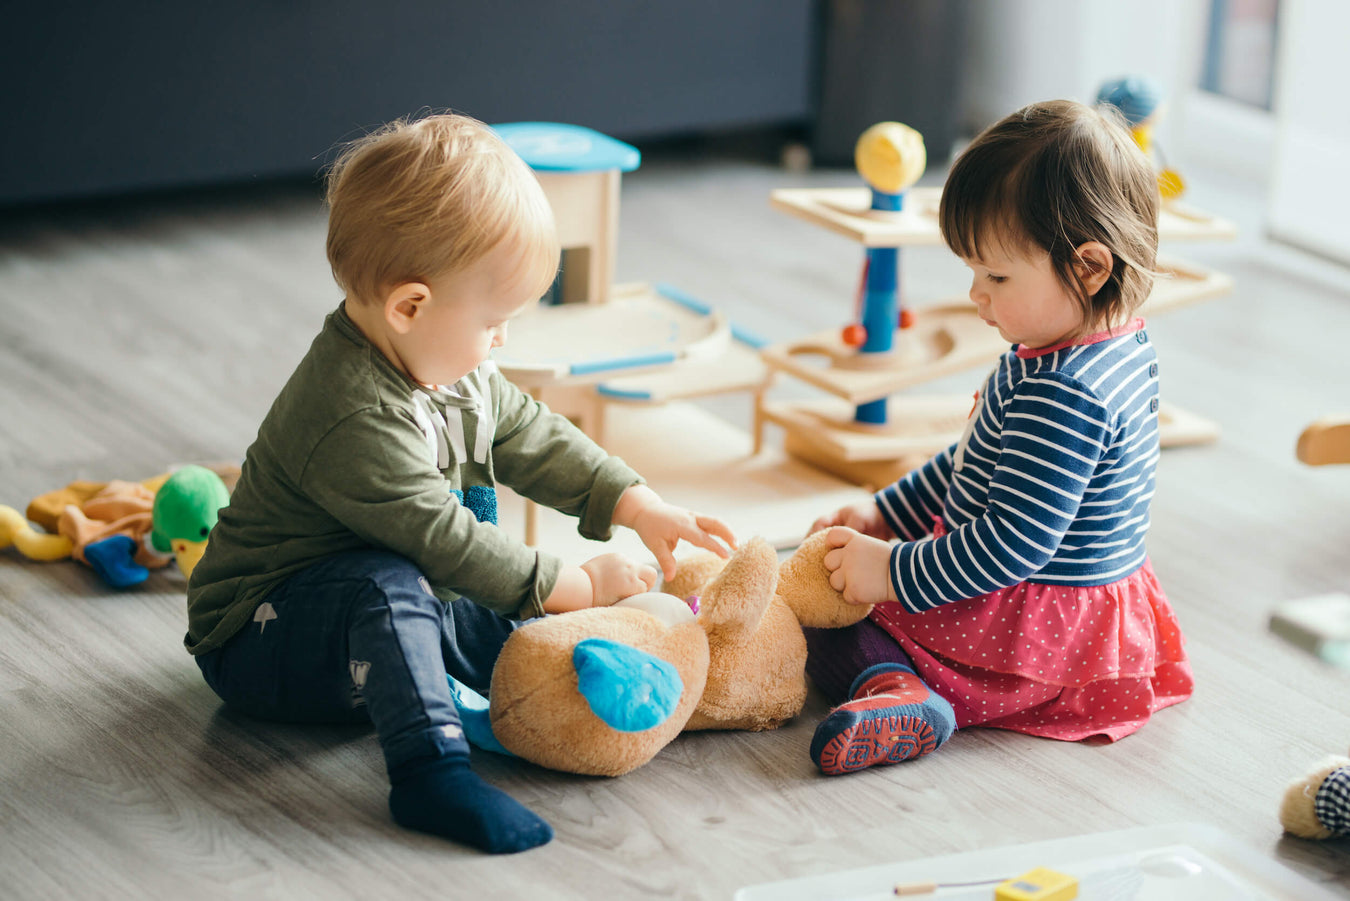 A baby boy and baby girl both wearing colourful second hand outifts play with a teddy bear